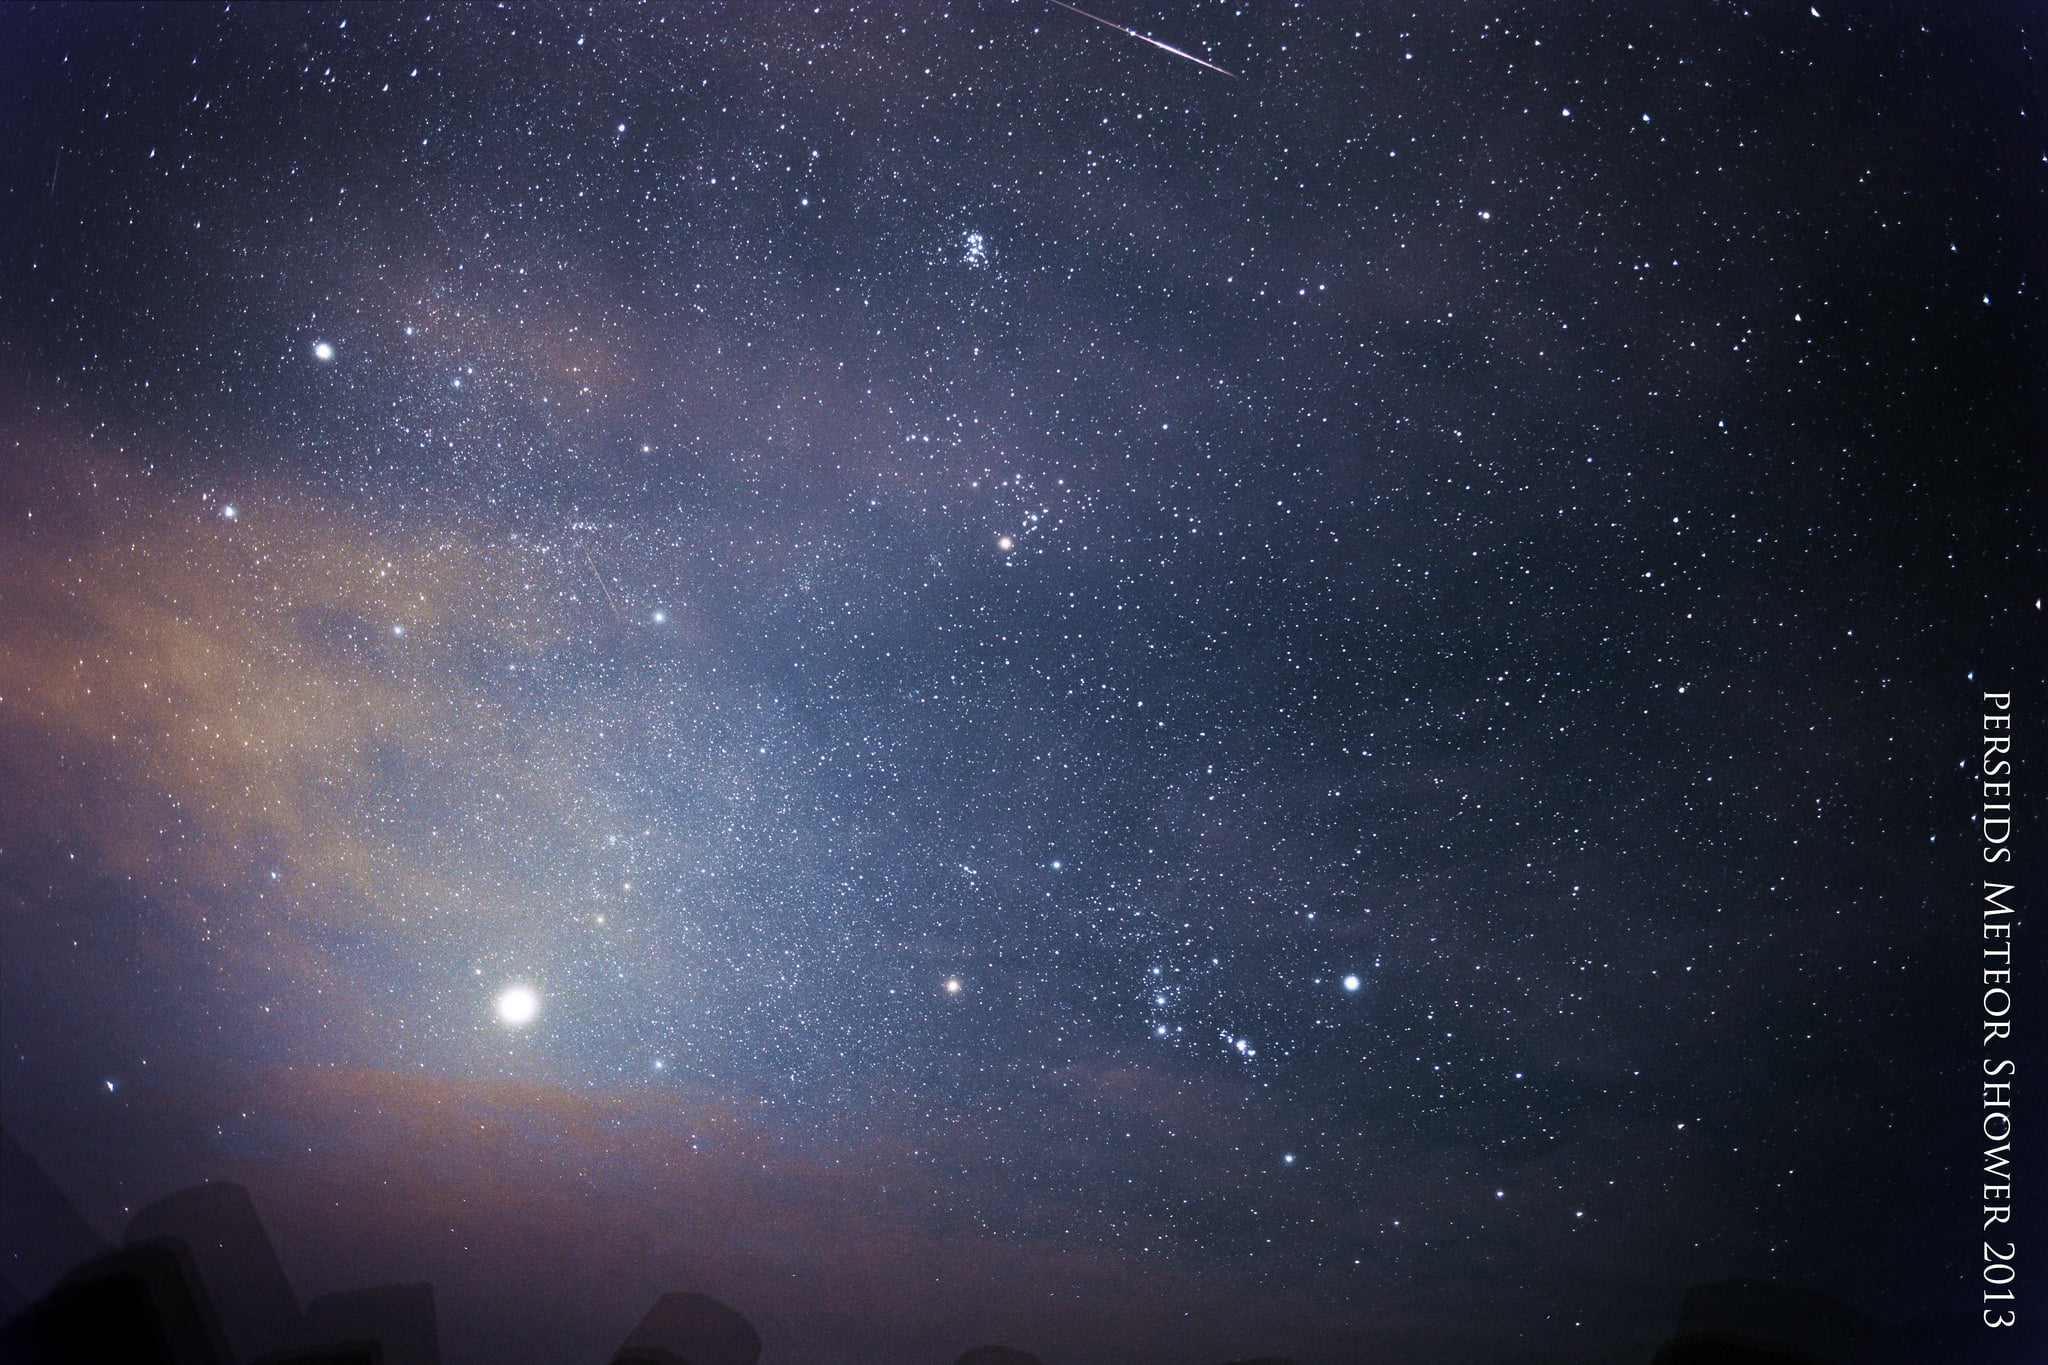 Perseid meteor shower is the pre-show to the eclipse